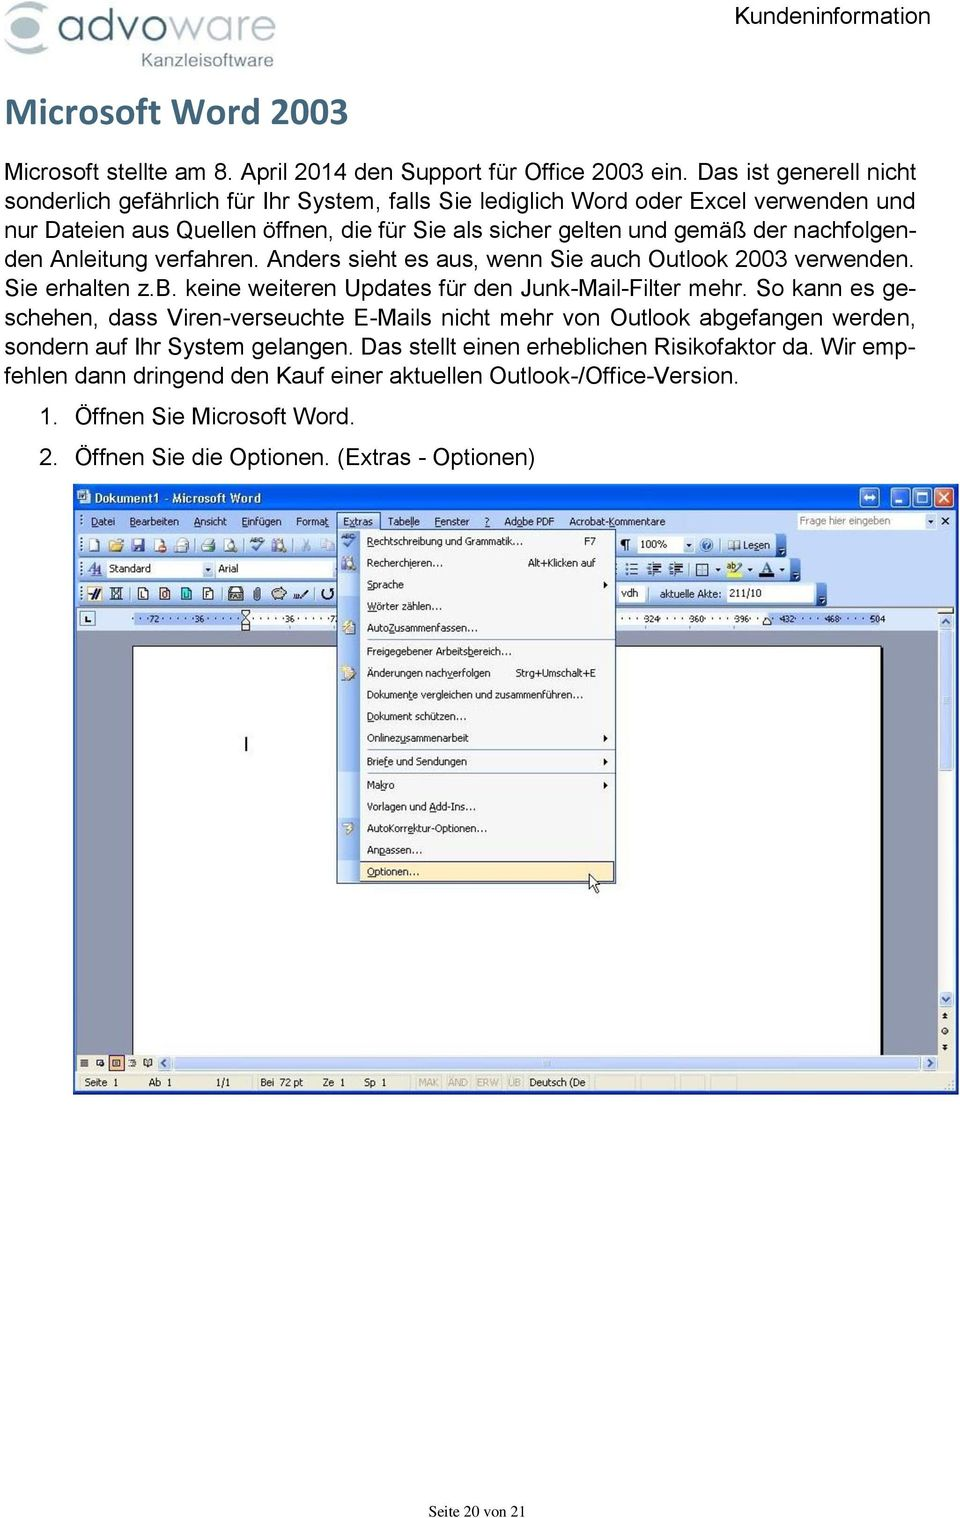 Einstellen der Makrosicherheit in Microsoft Word - PDF